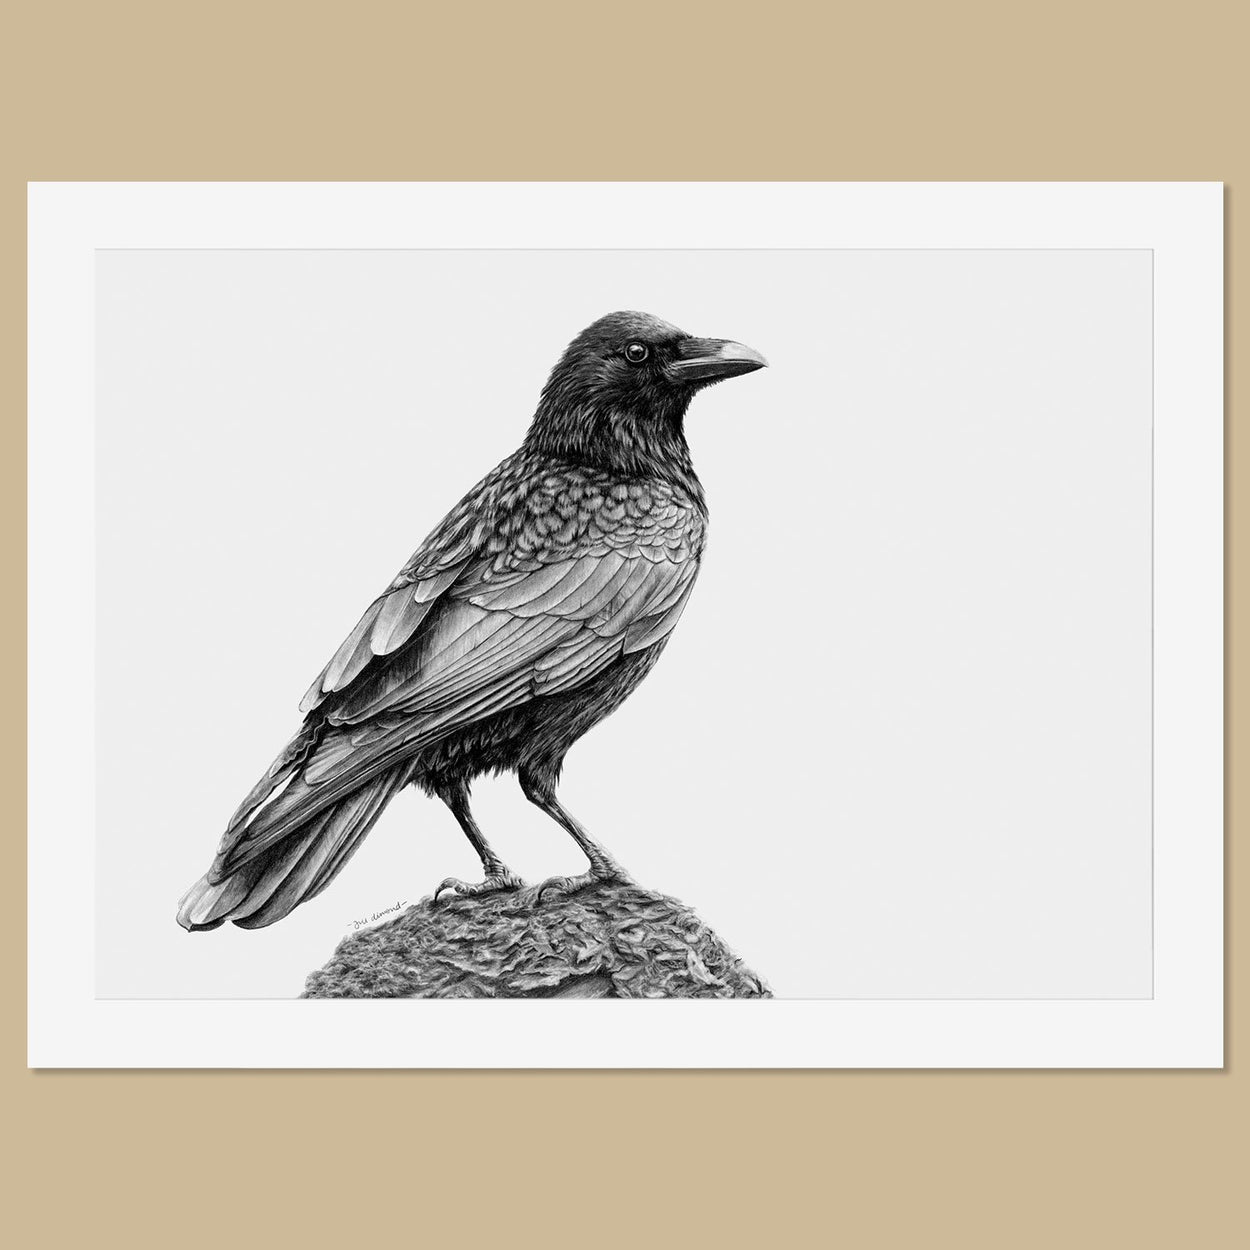 Original Crow Pencil Drawing - The Thriving Wild